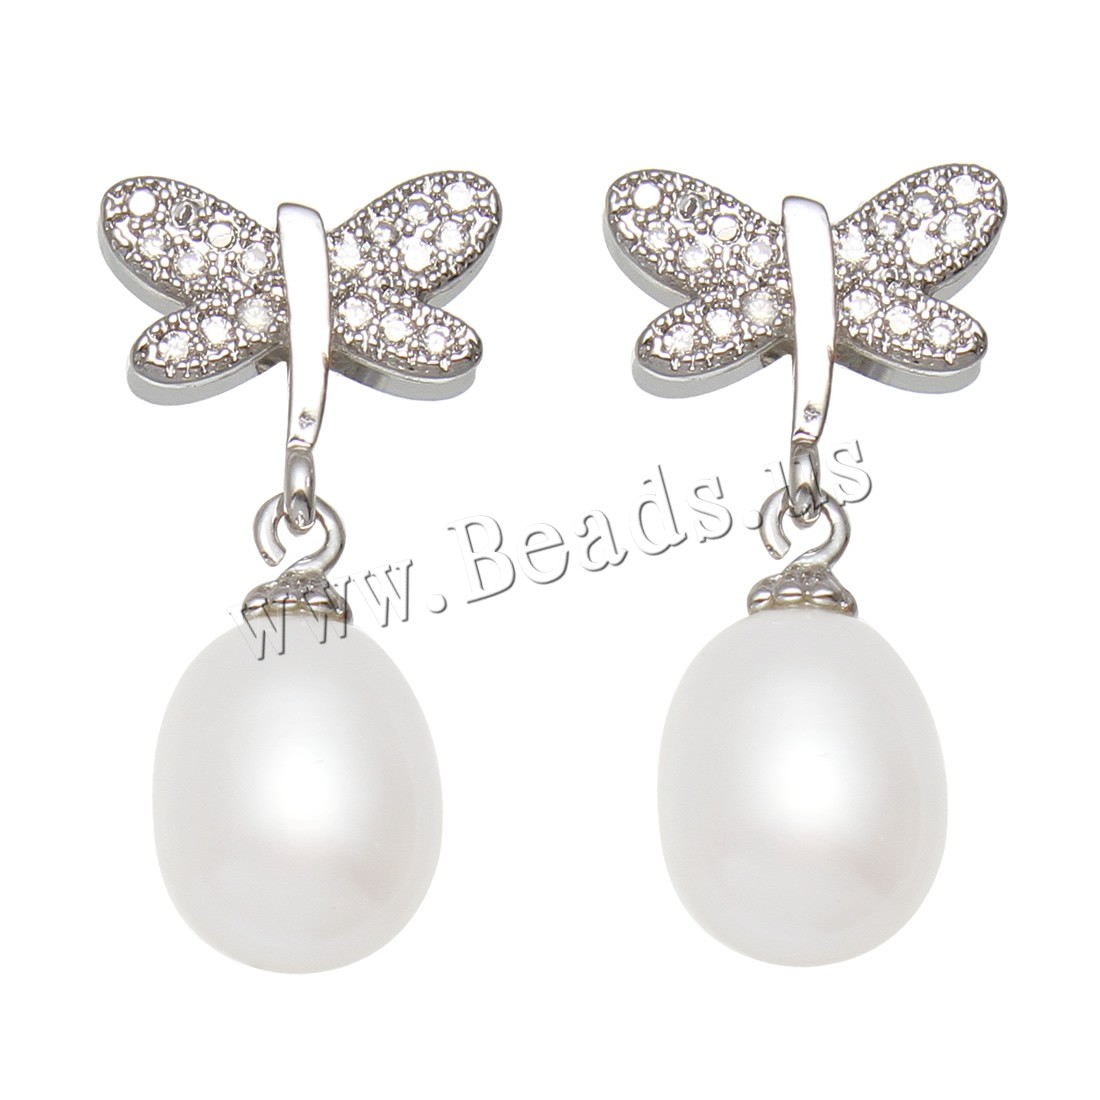 Buy Freshwater Pearl Earrings Brass Rice platinum color plated woman & rhinestone white 7-8mmuff0c11x26x8mm Sold Pair